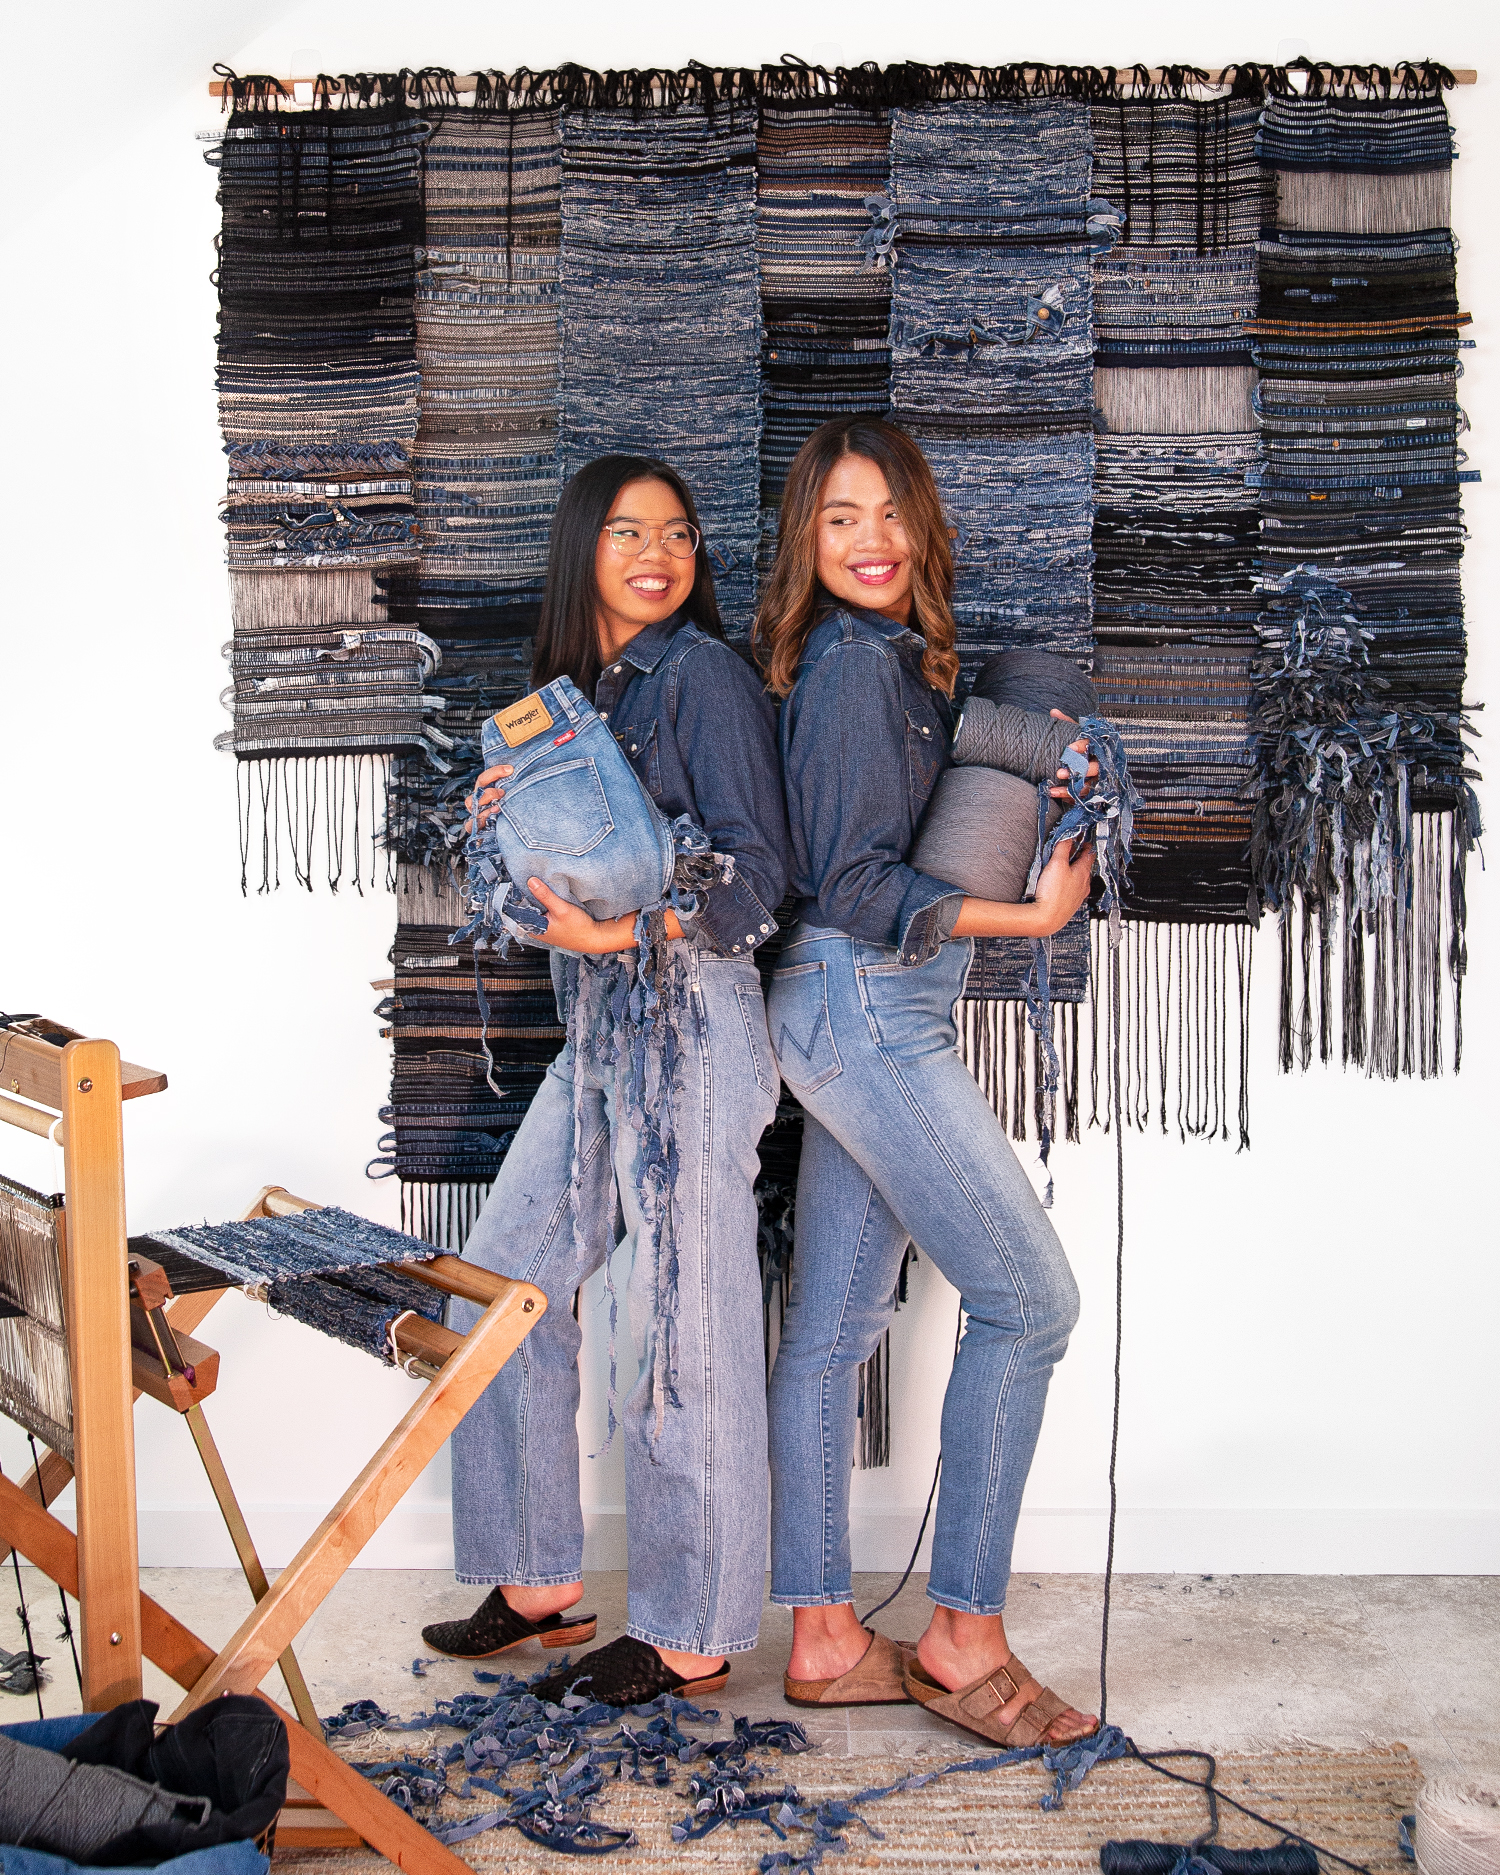 Repurposing and recycling preloved denim into unique expressions of art. Photography by Darren Luk.